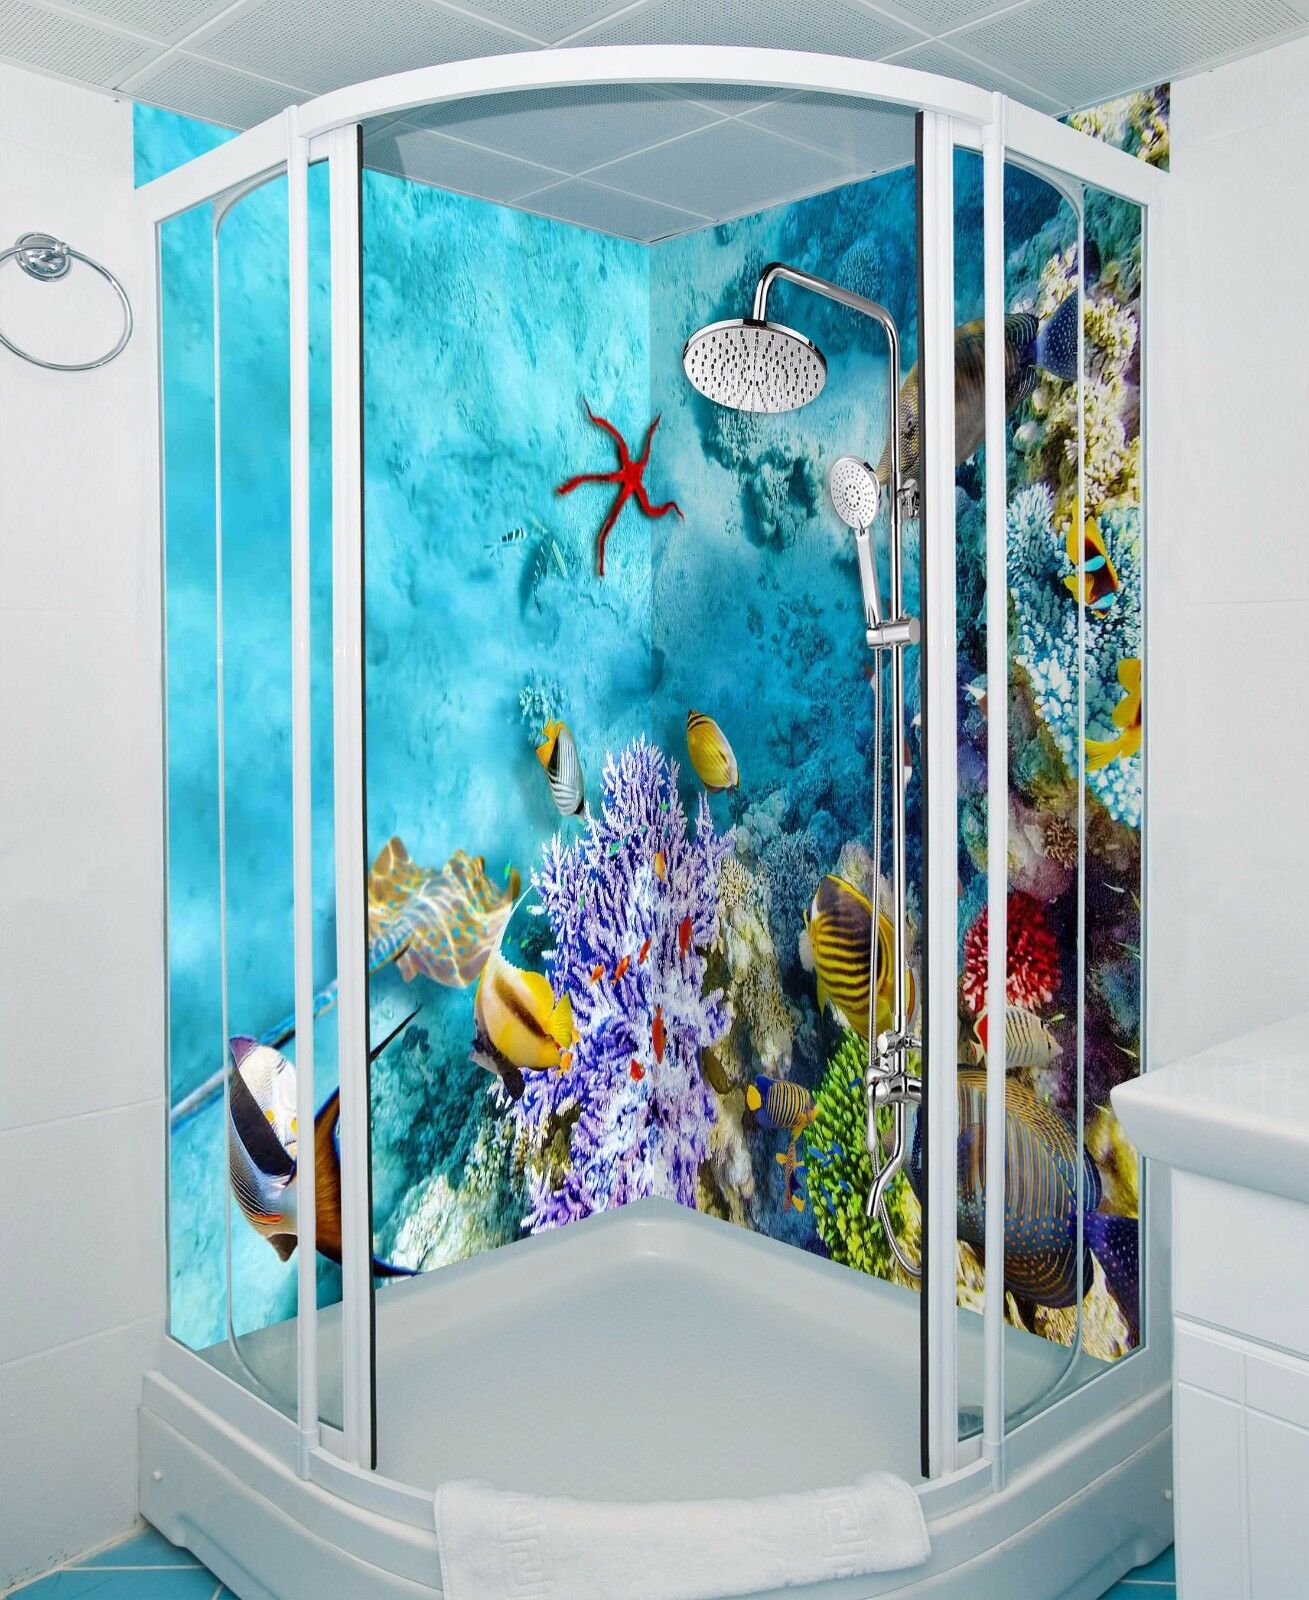 3D Blau sea fish 596 WallPaper Bathroom Print Decal Wall Deco AJ WALLPAPER UK